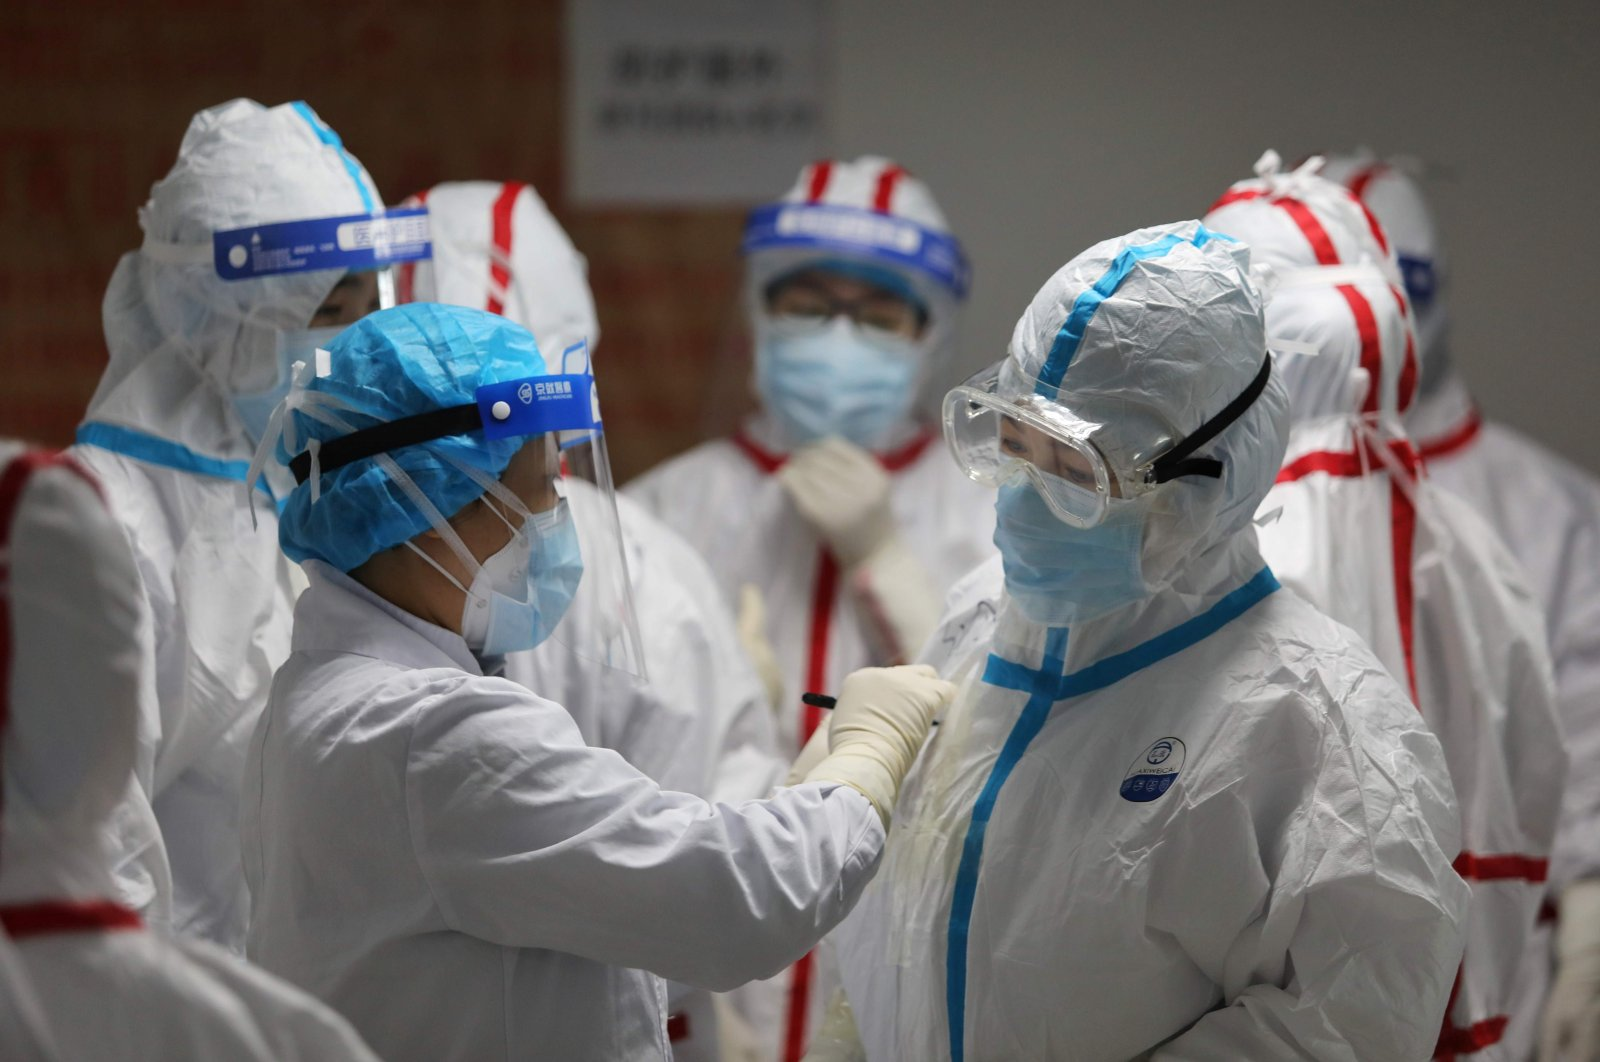 Medical staff write messages on their protective suits before attending to COVID-19 coronavirus patients at the Red Cross Hospital, Wuhan, March 16, 2020. (AFP Photo)